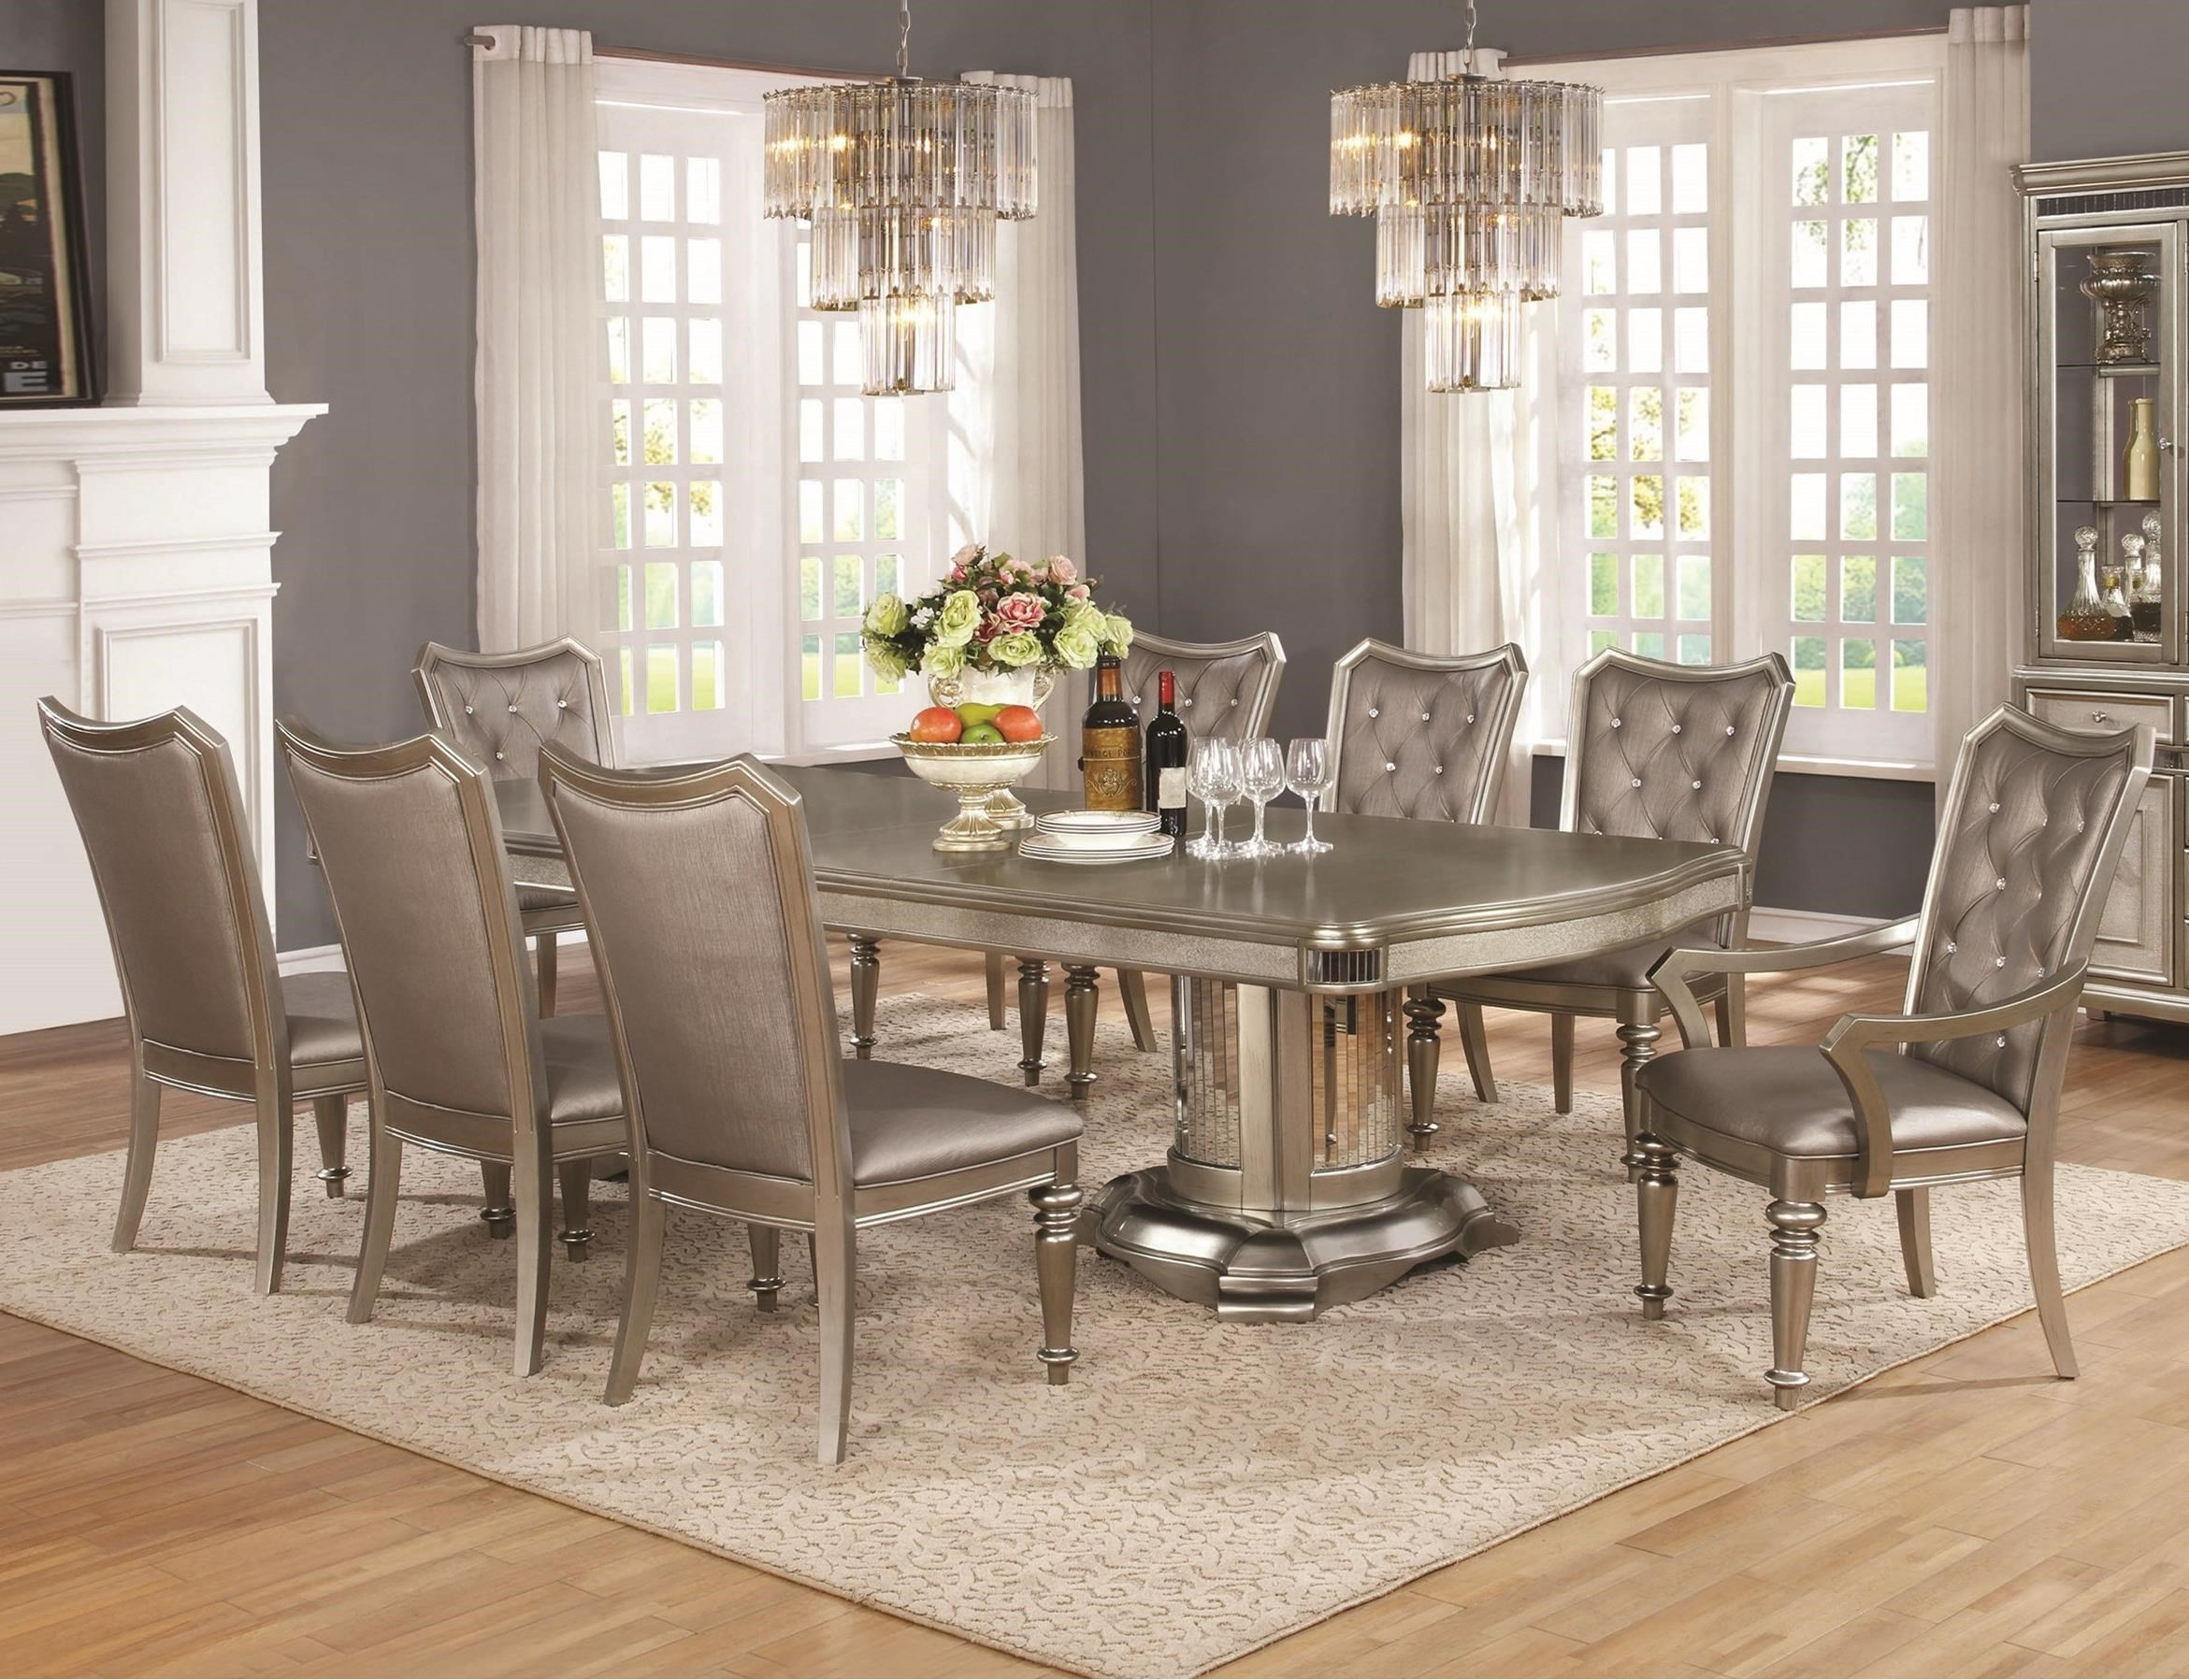 Coaster Danette 9 Piece Table And Chair Set   Item Number: 107311+2x107313+